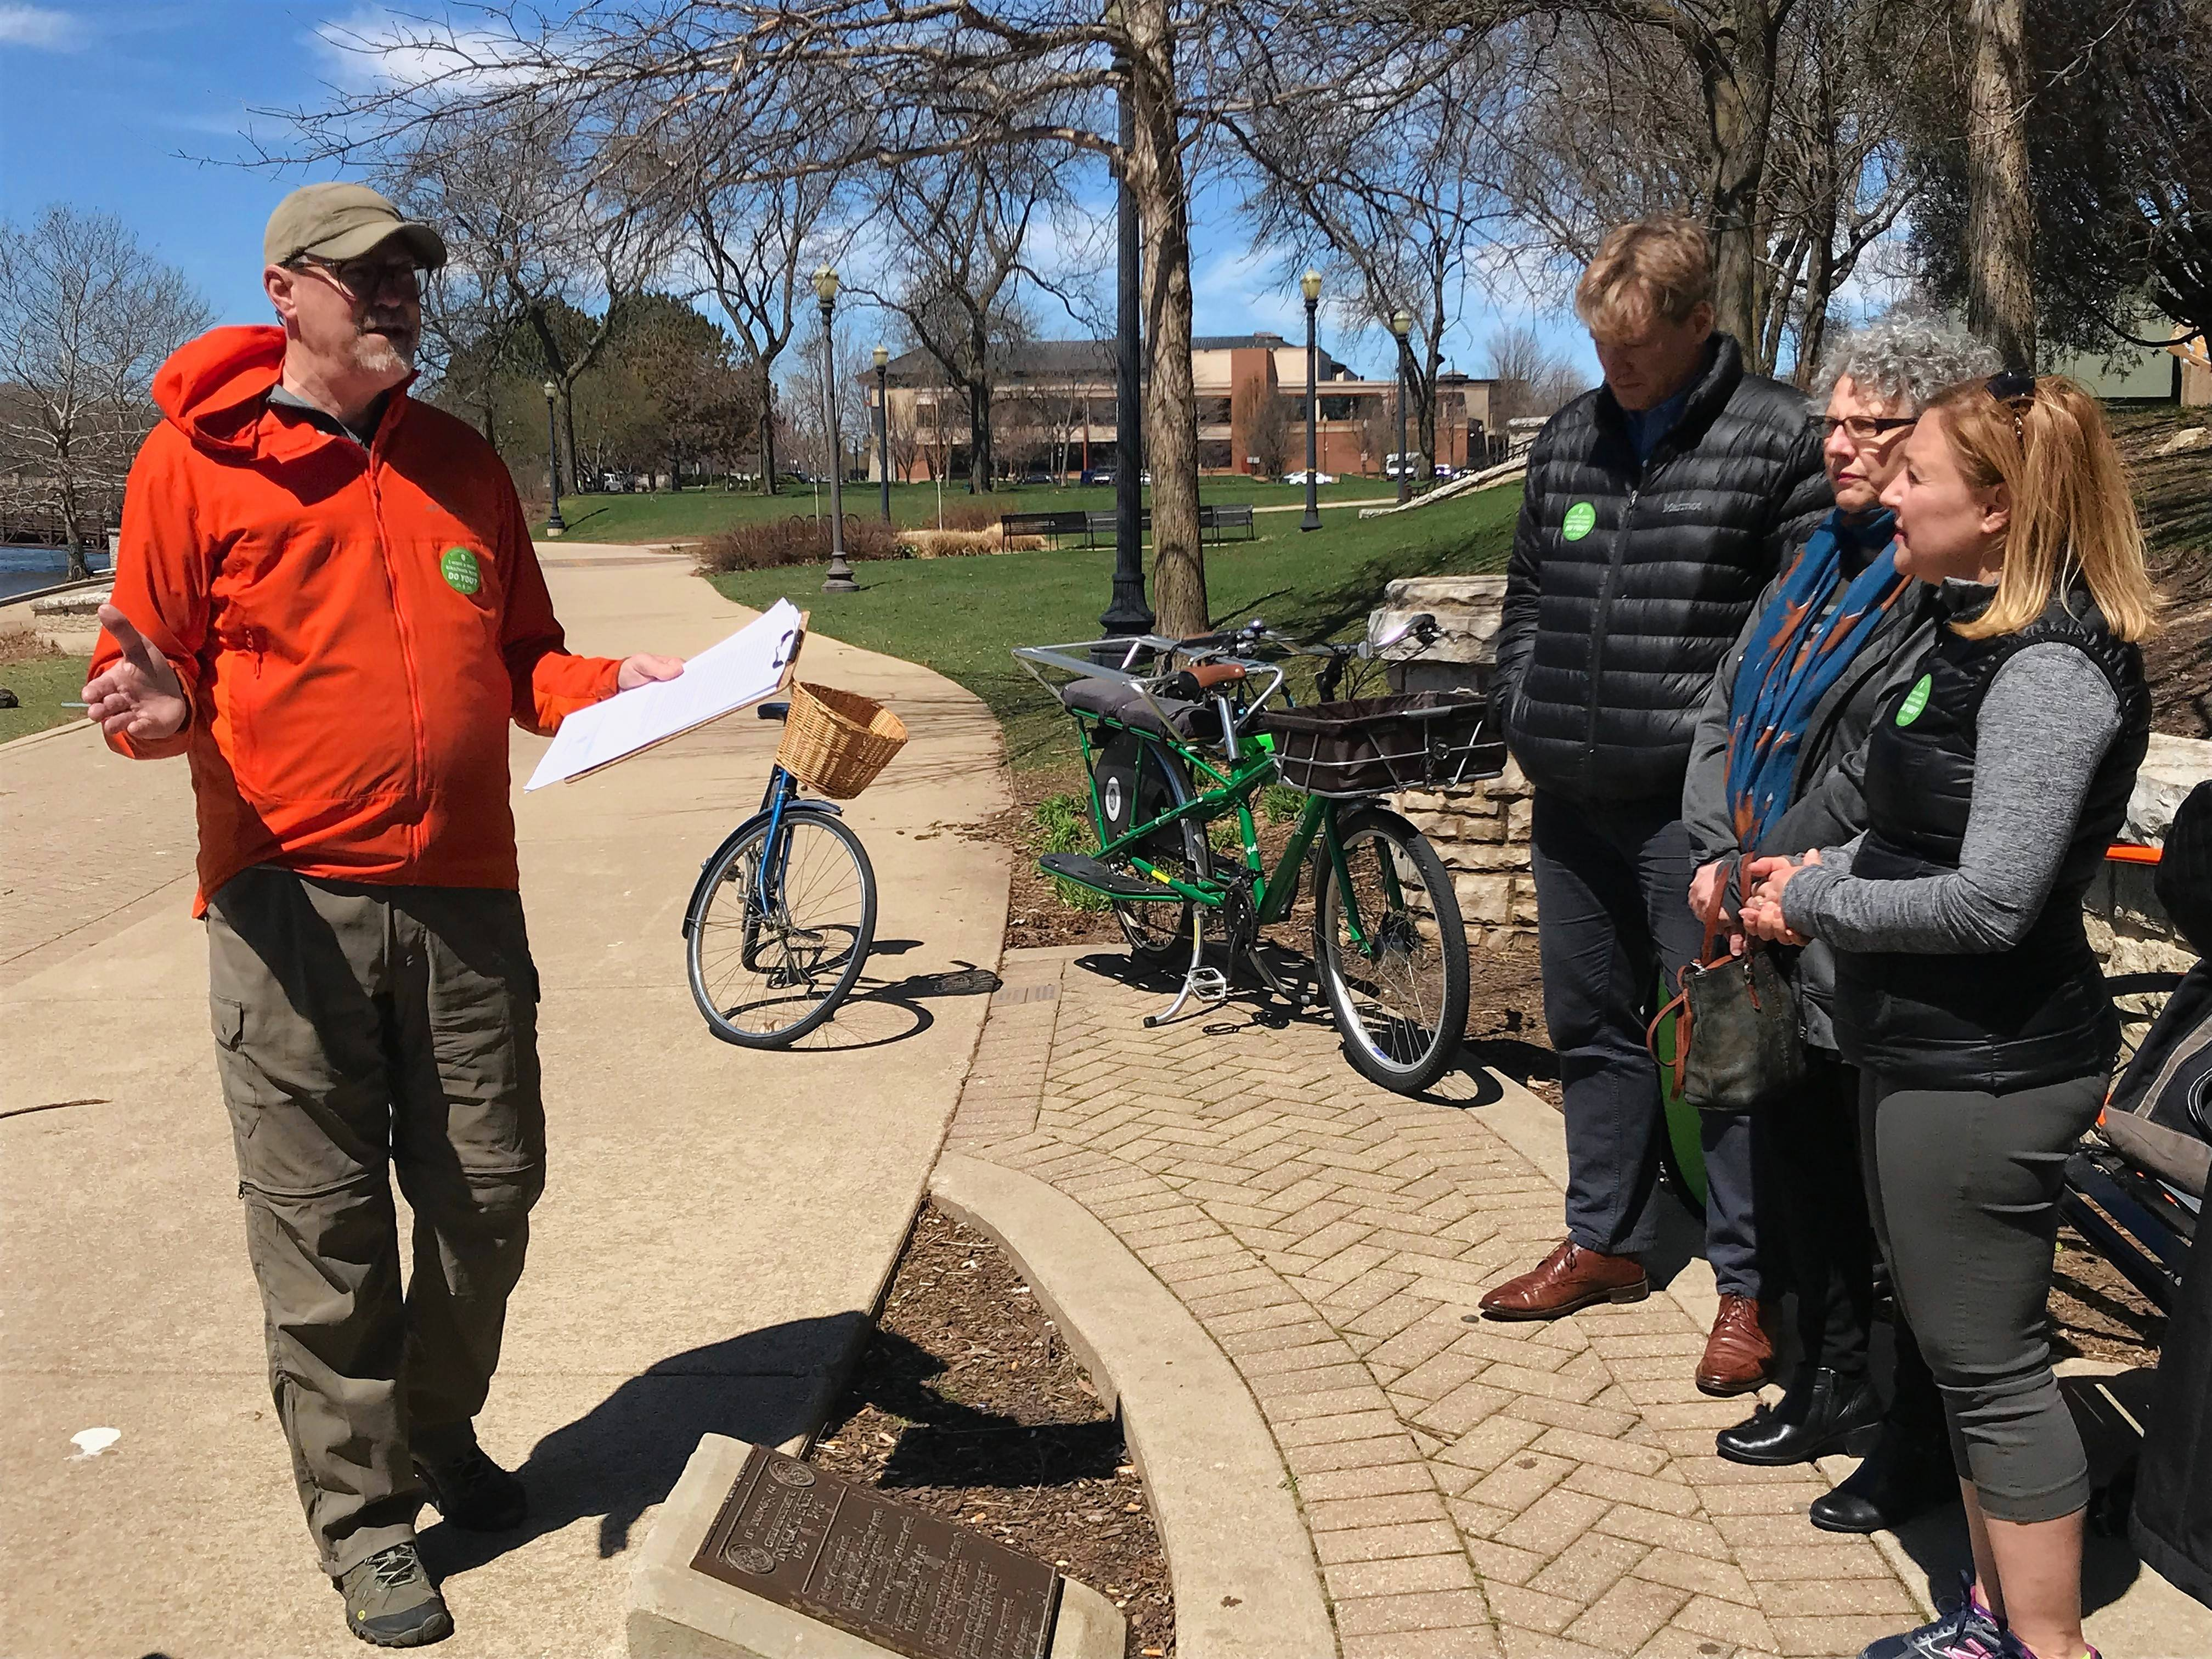 Tom Armstrong, left, a member of the Elgin parks and recreation advisory board, talks about bike friendliness Friday afternoon at an event organized by the Active Transportation Alliance along the Fox River bike trail in Elgin. To the right are, from far right, state Rep. Anna Moeller and Elgin City Council members Carol Rauschenberger and John Steffen.